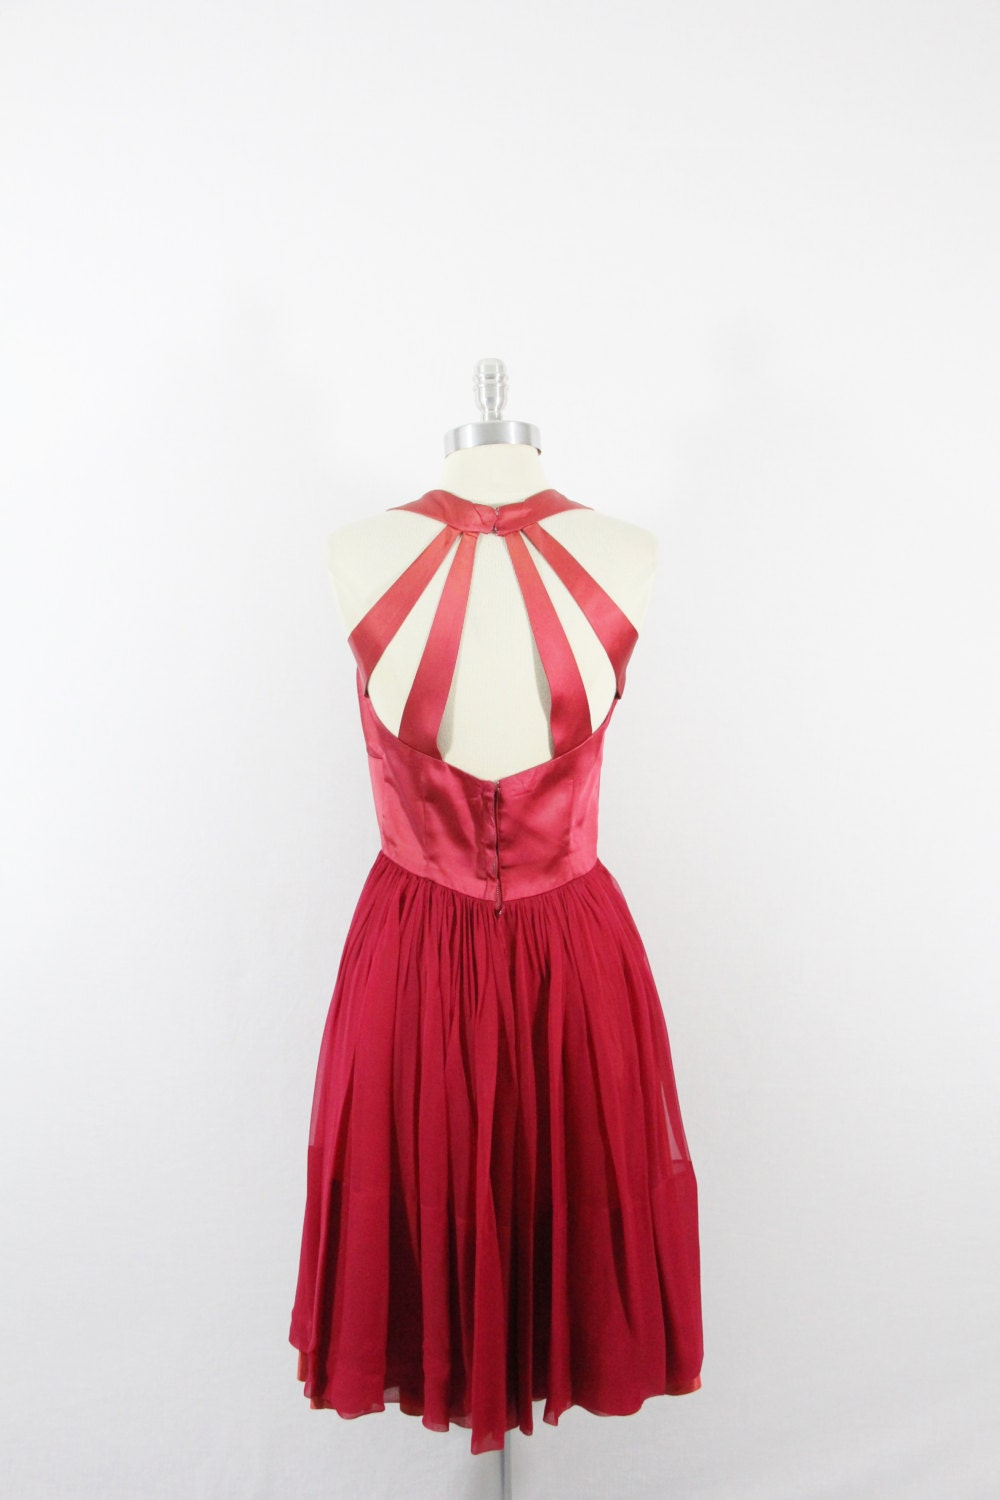 1950s Vintage Party Dress - Hot Pink Halter with Full Skirt Cocktail Party Frock